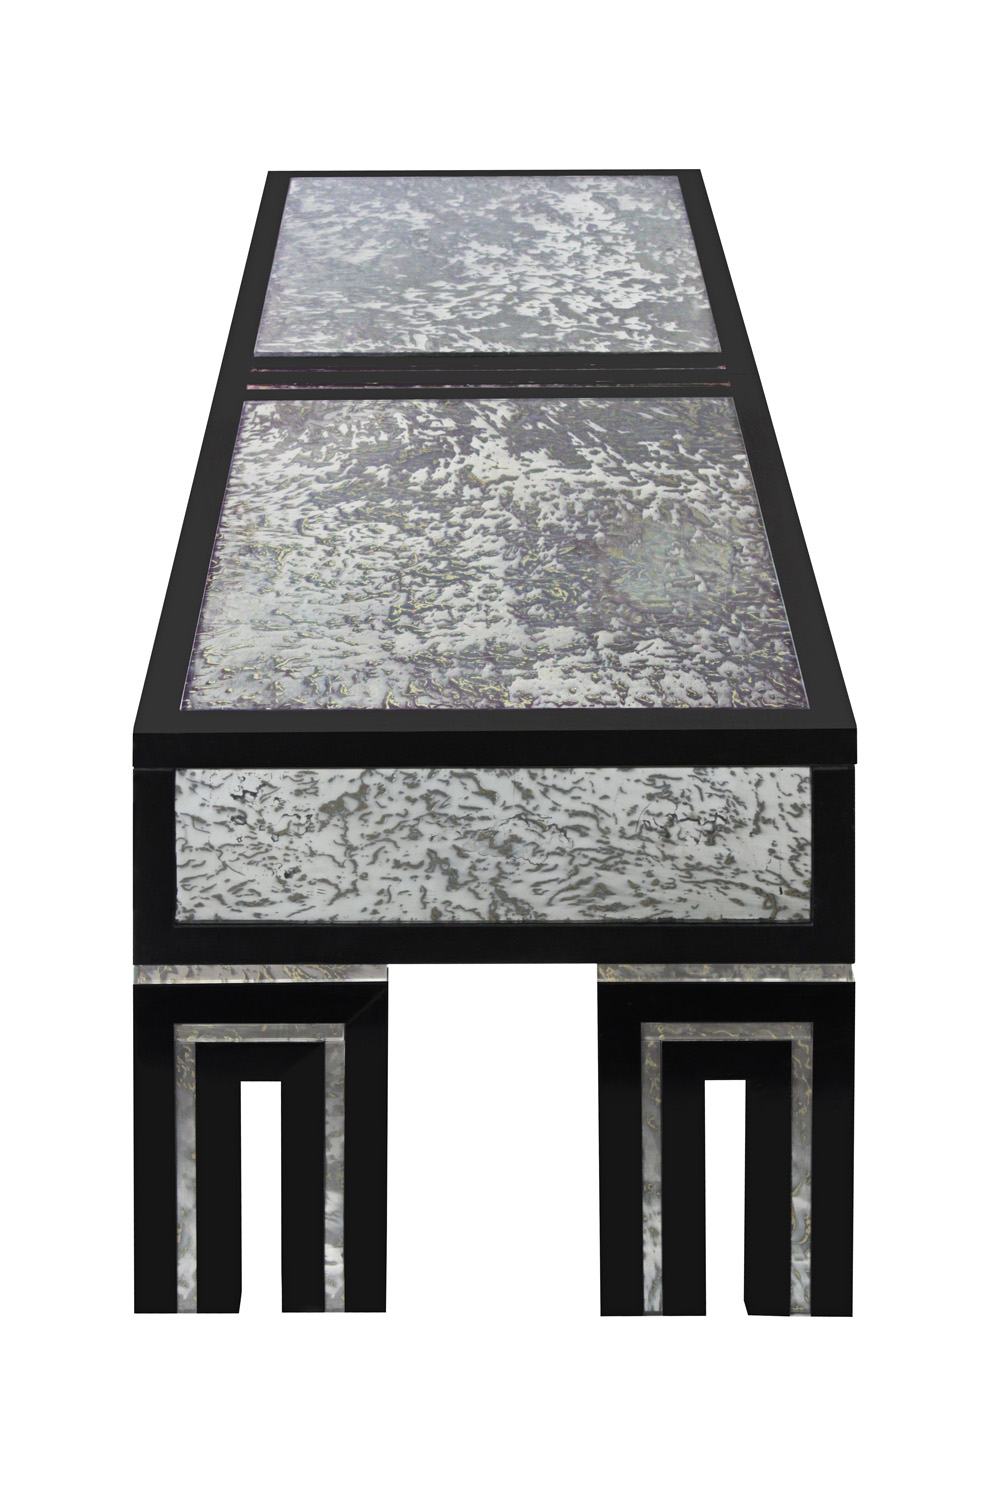 Mont 75 sliding top mottled glass coffeetable401 detail3 hires.jpg